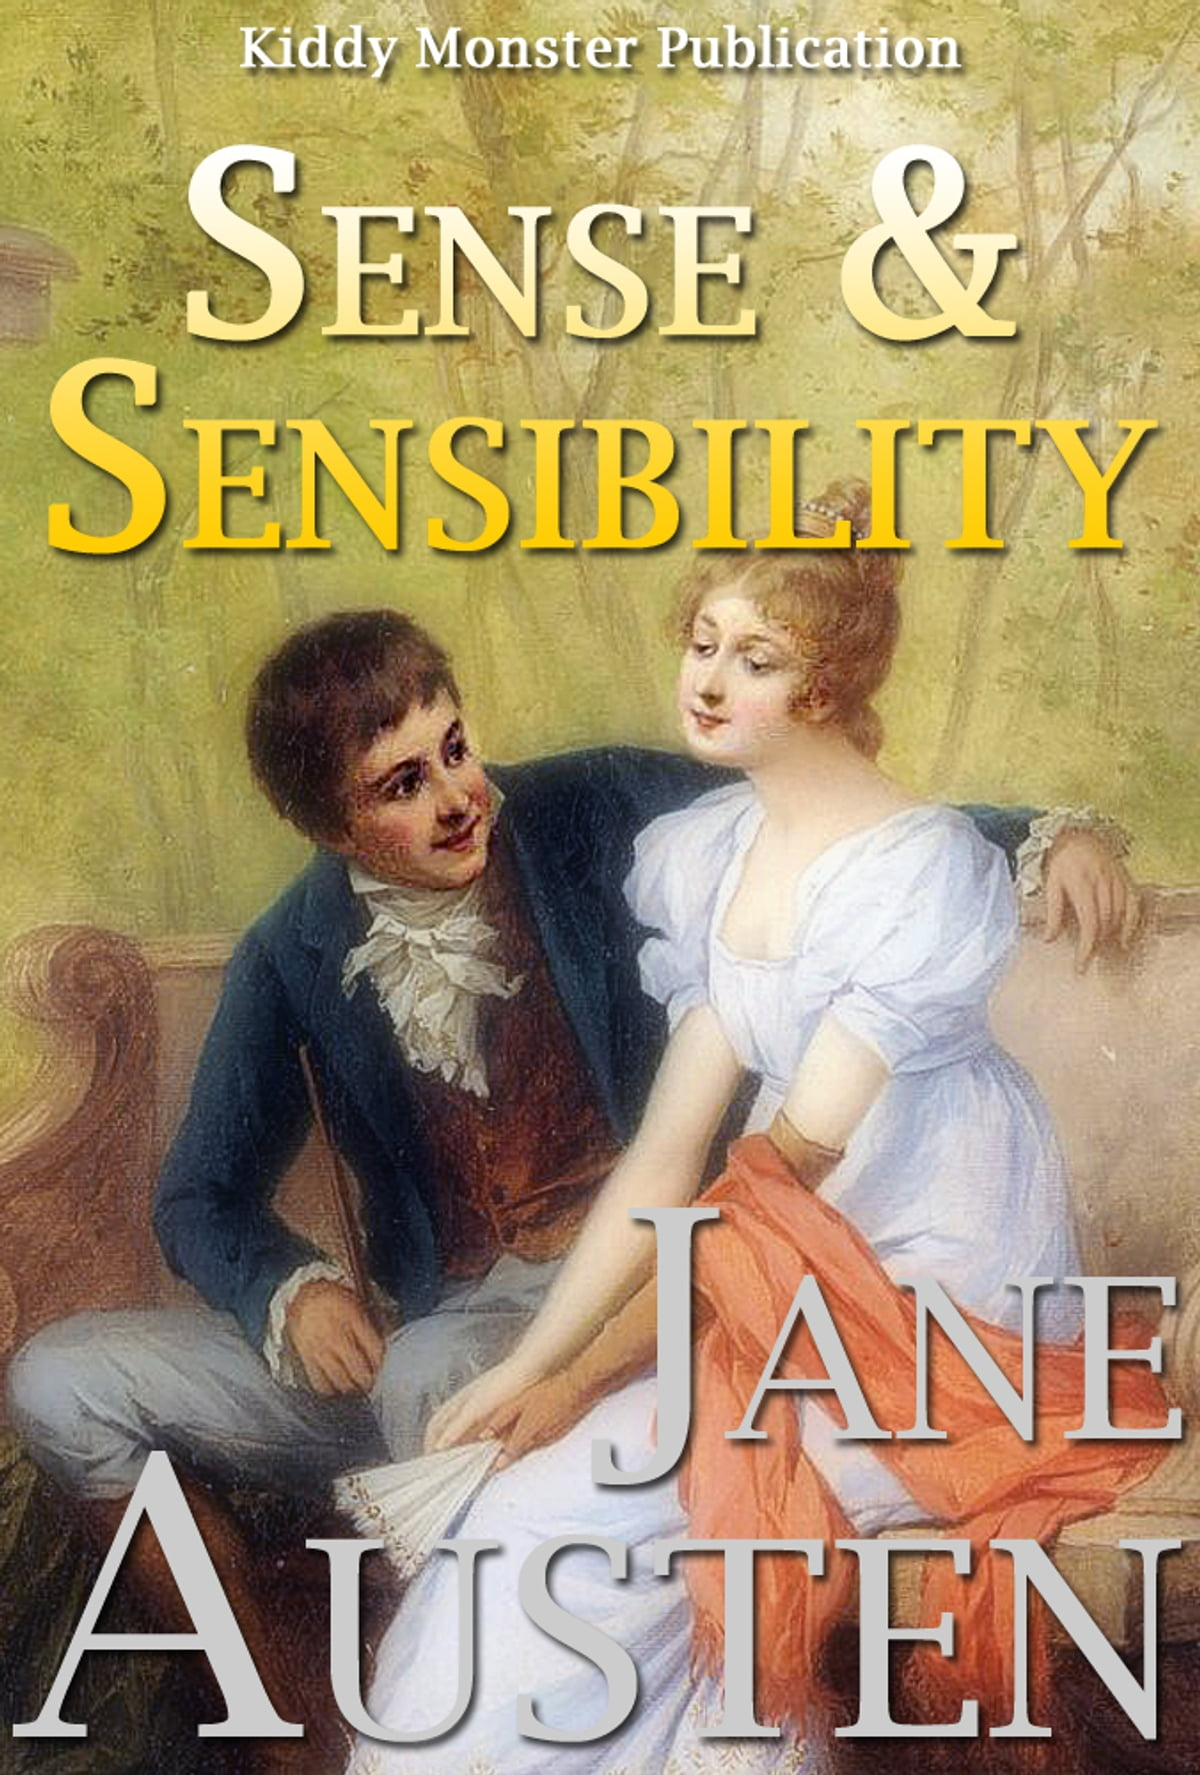 an analysis of themes in sense and sensibility by jane austen